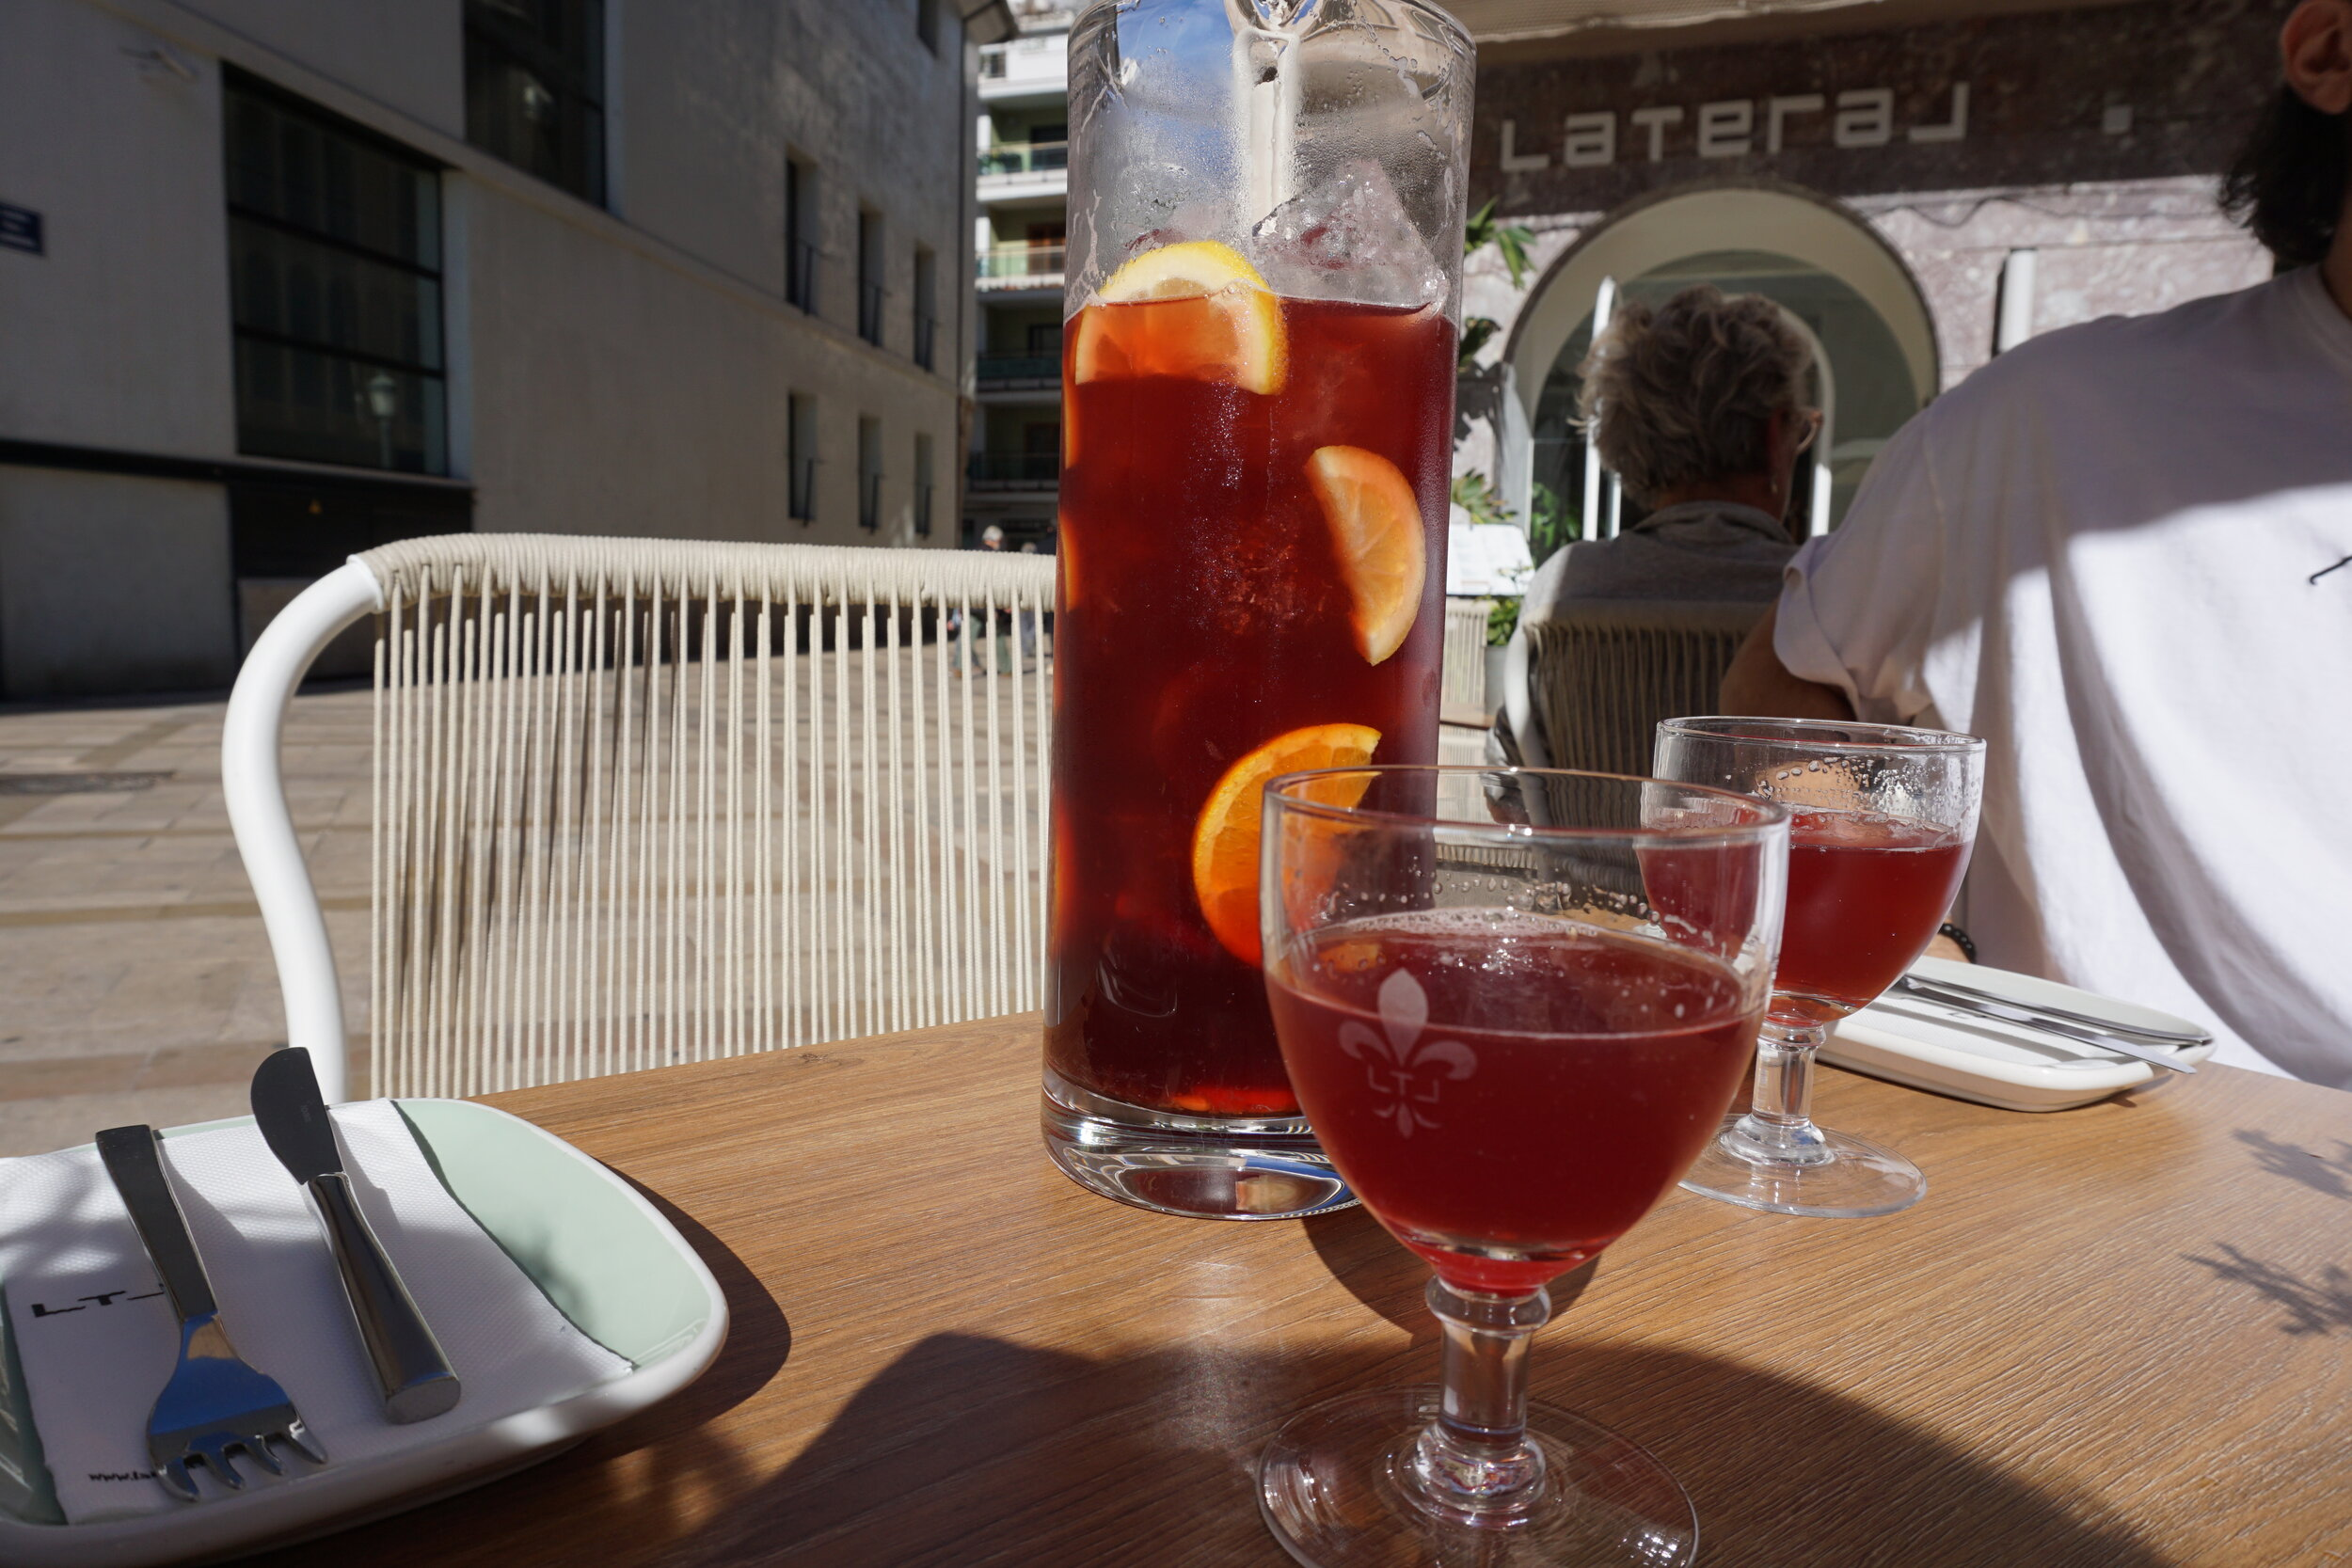 Sangria, the famous Spanish wine drink goes well with the food in Valencia.